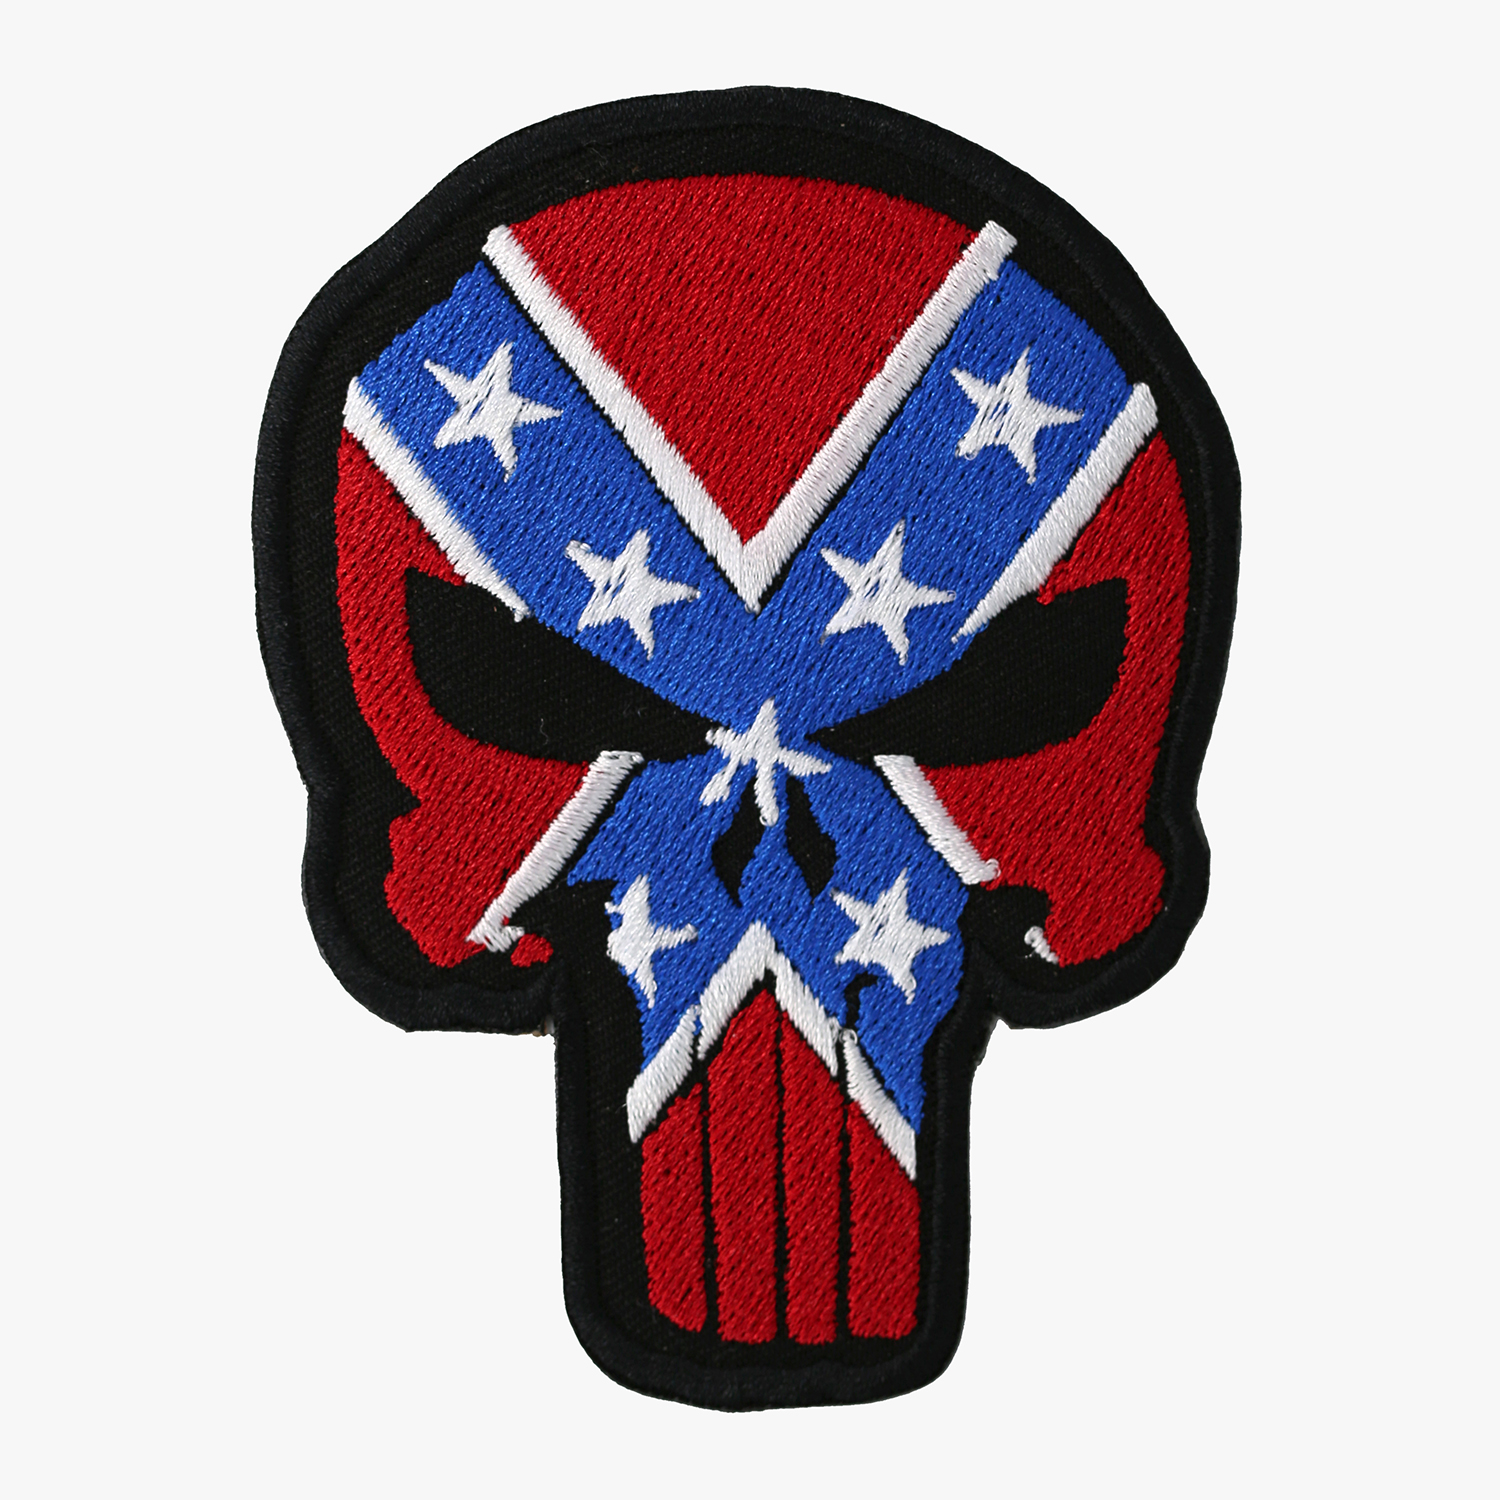 Redneck Flag Punisher Skull Embroidered Biker Patch